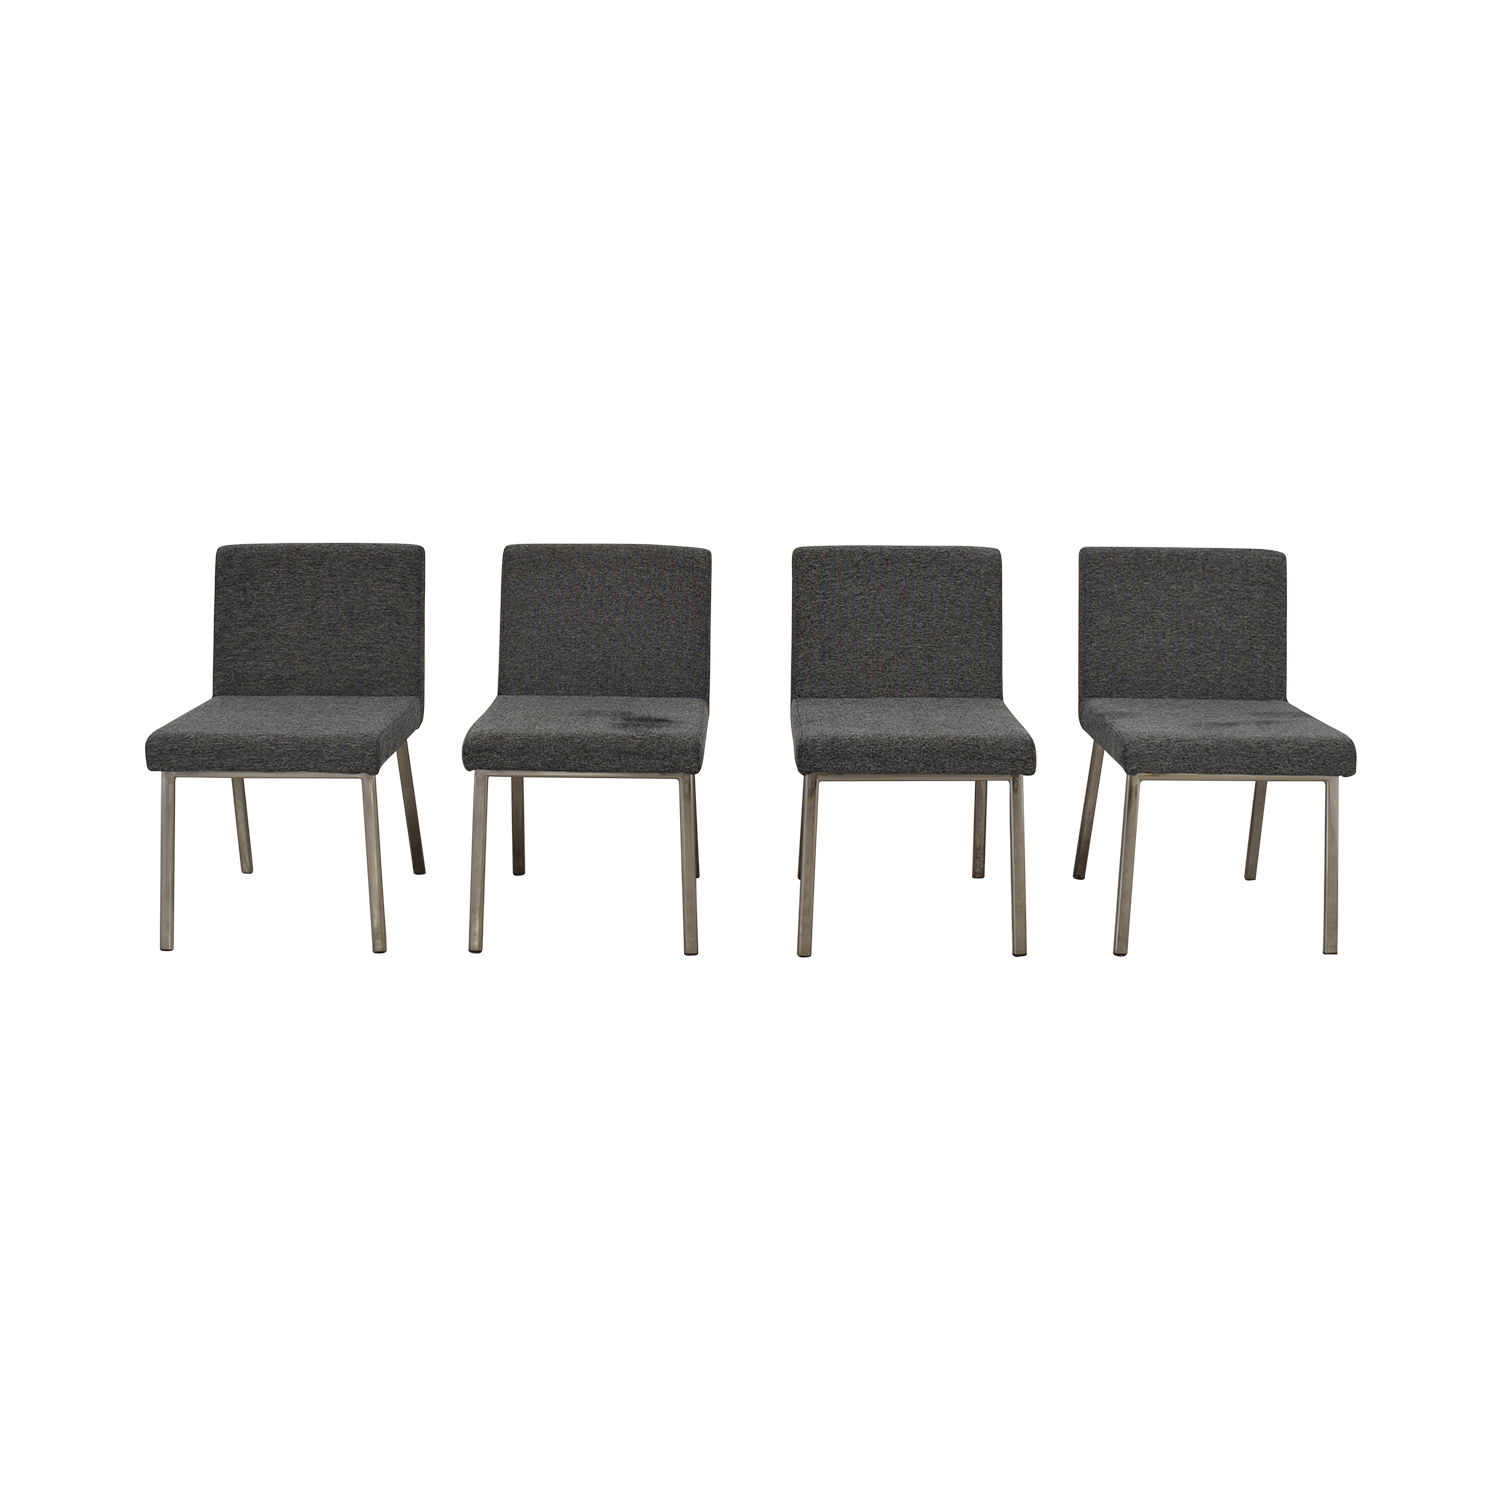 CB2 CB2 Functional Dining Room Chairs used